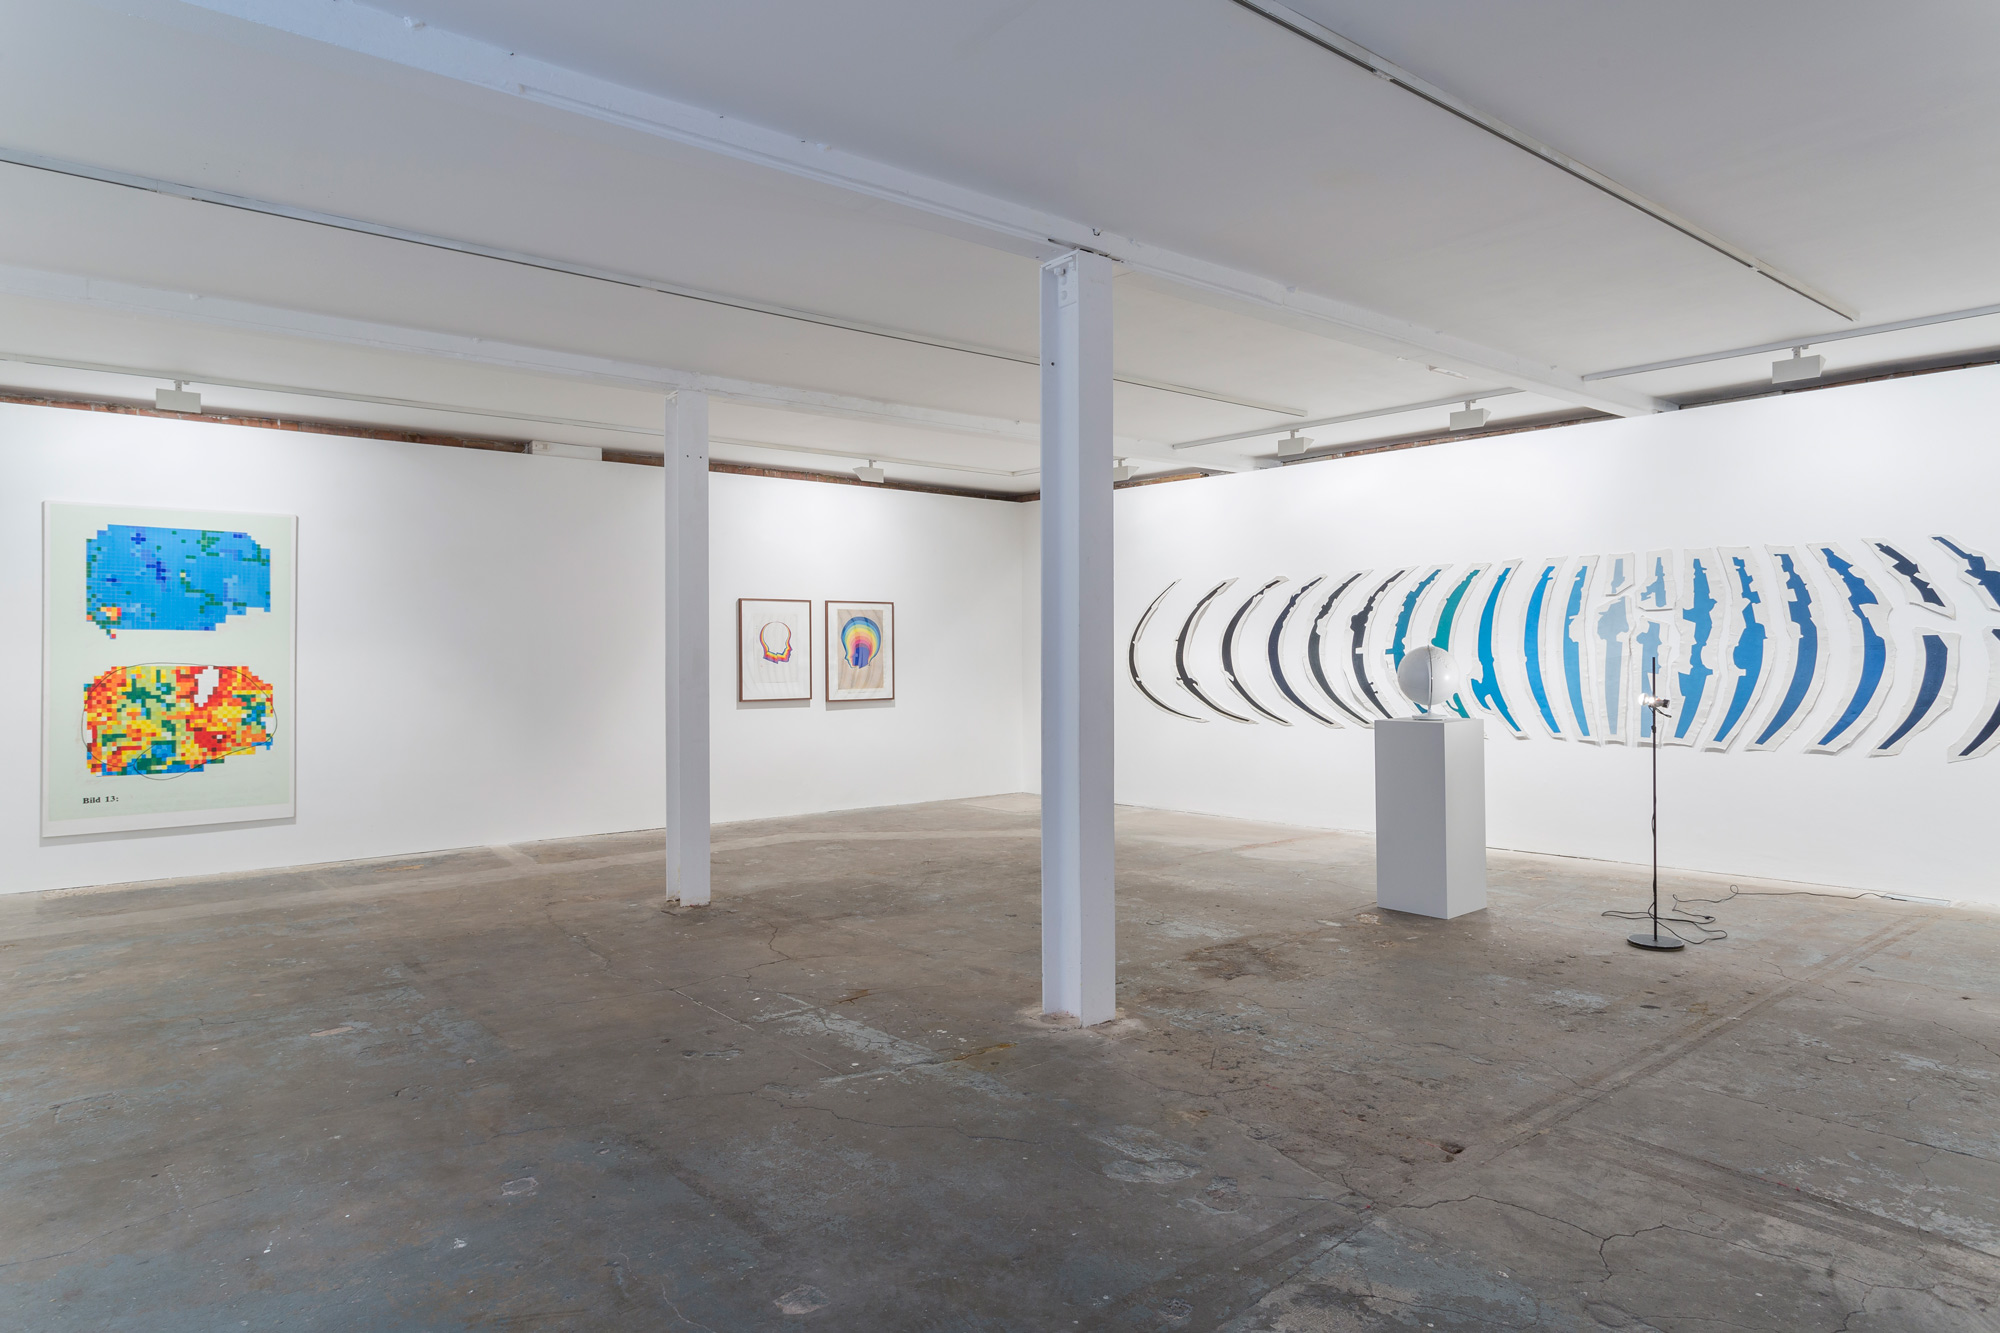 Installation view. KP Brehmer